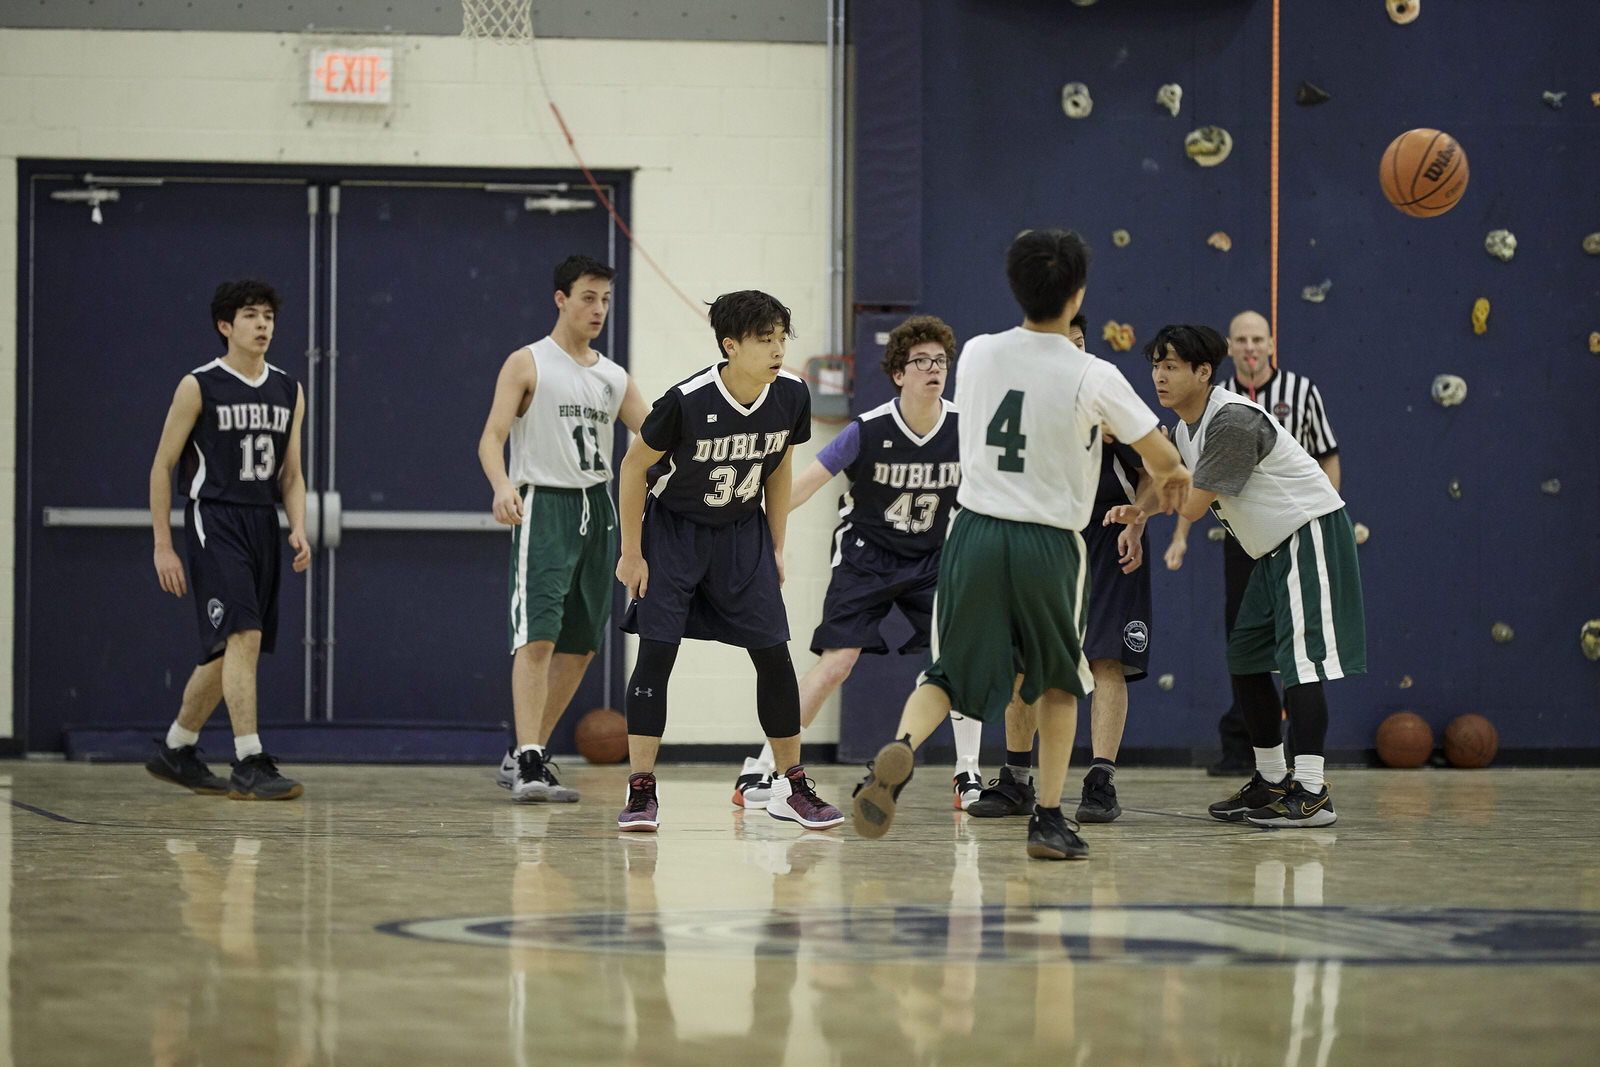 Dublin JV Boys Basketball vs High Mowing School - Jan 26 2019 - 0118.jpg